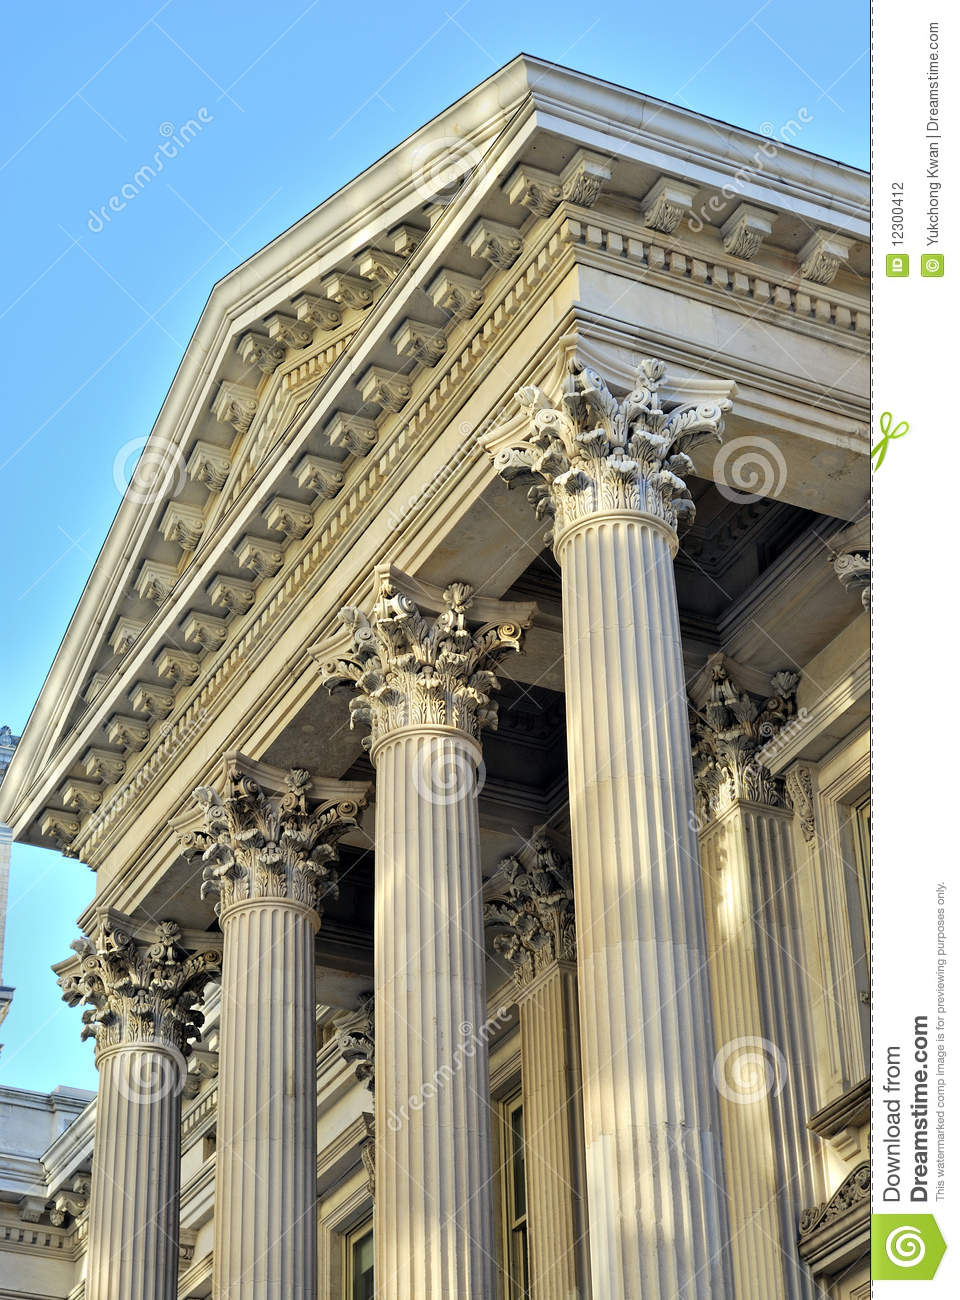 Neoclassical Architecture With Columns Stock Photo Image